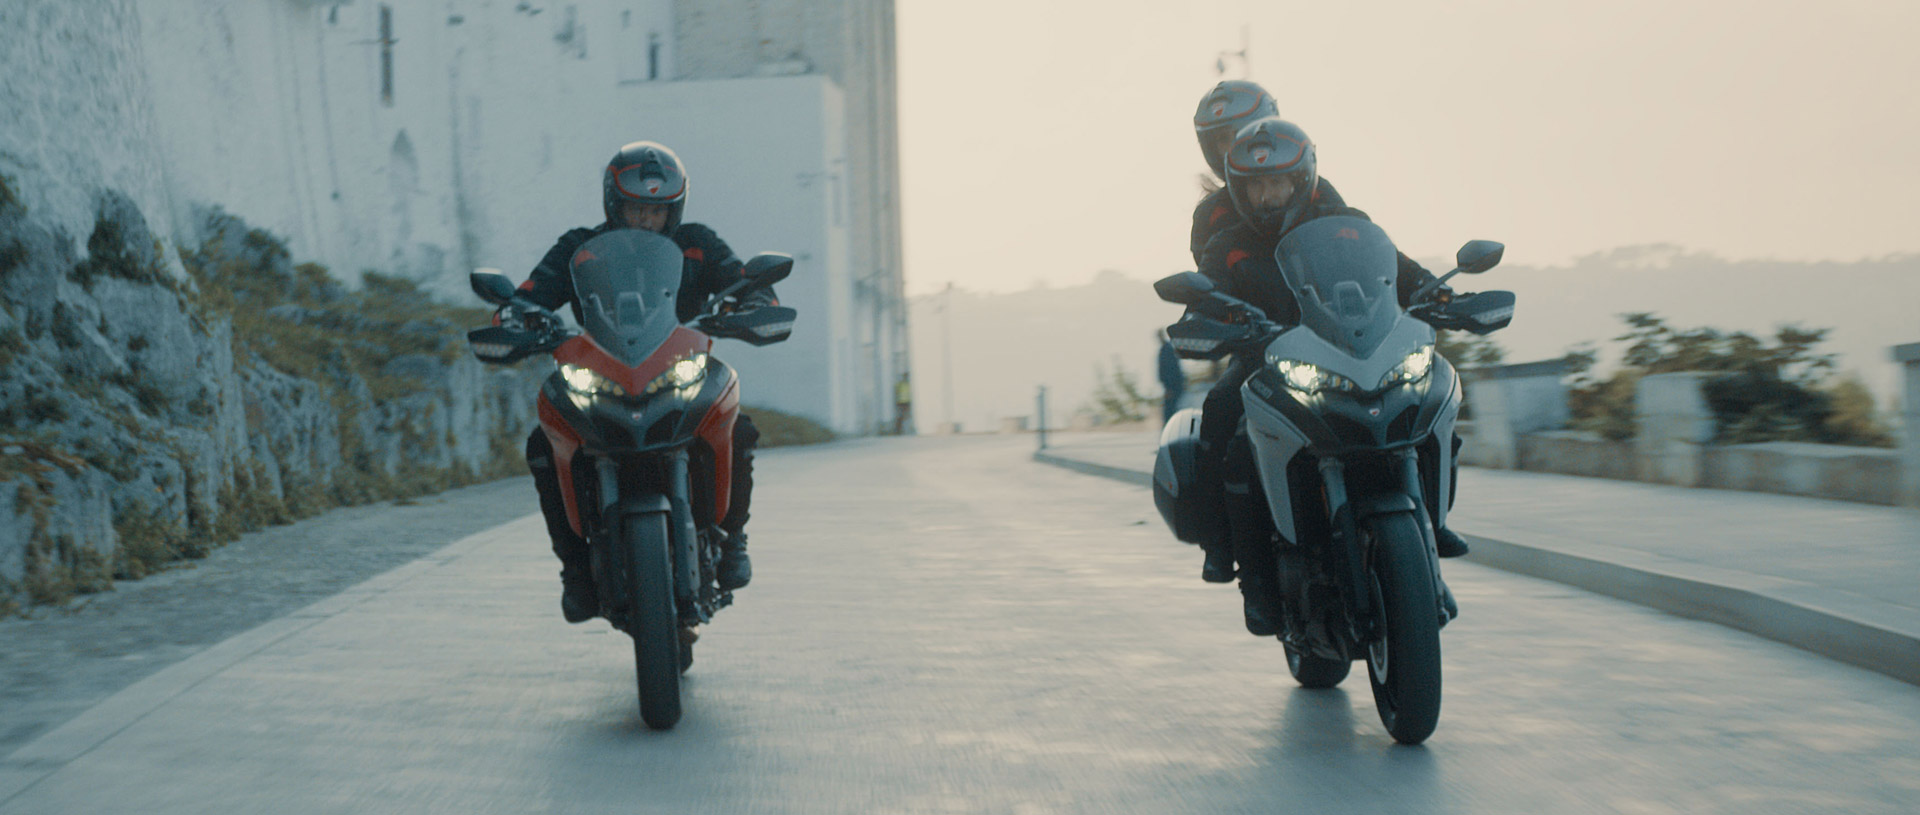 Ducati – Extraordinary Journey